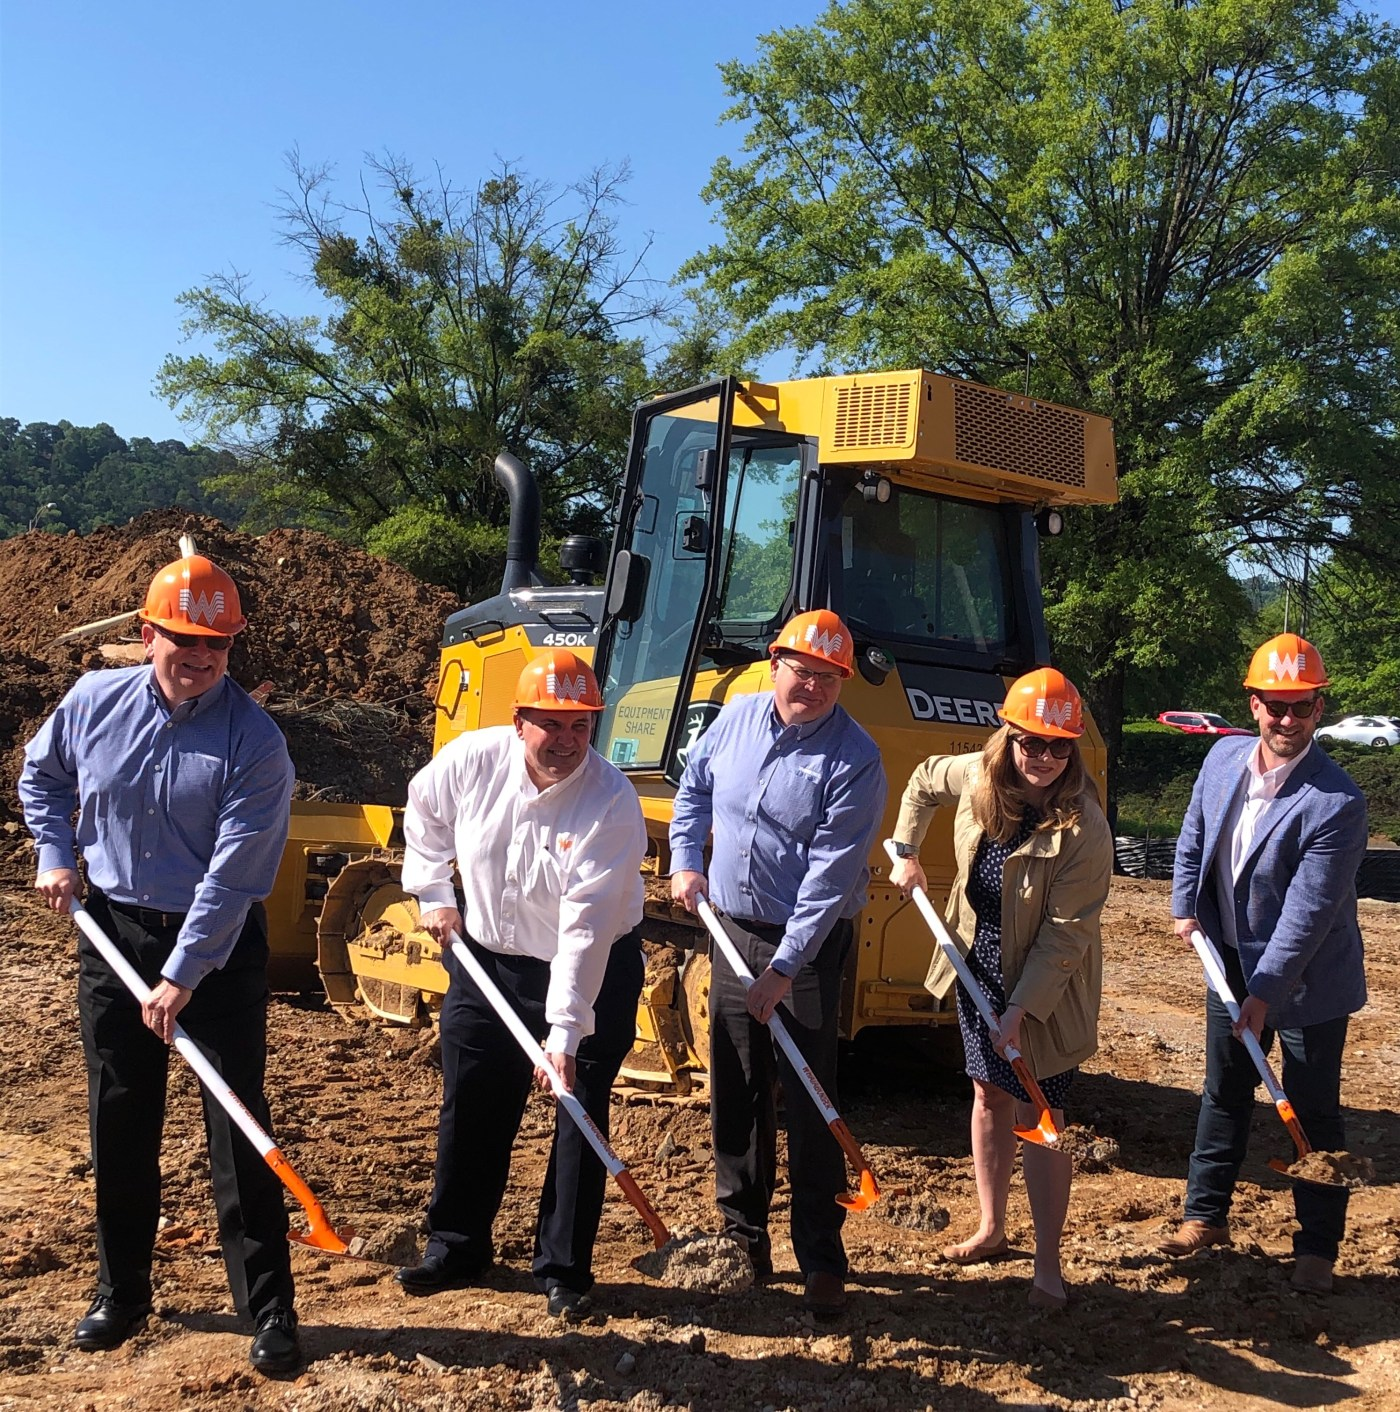 Whataburger southeast friends and City of Homewood Mayor at the groundbreaking event.